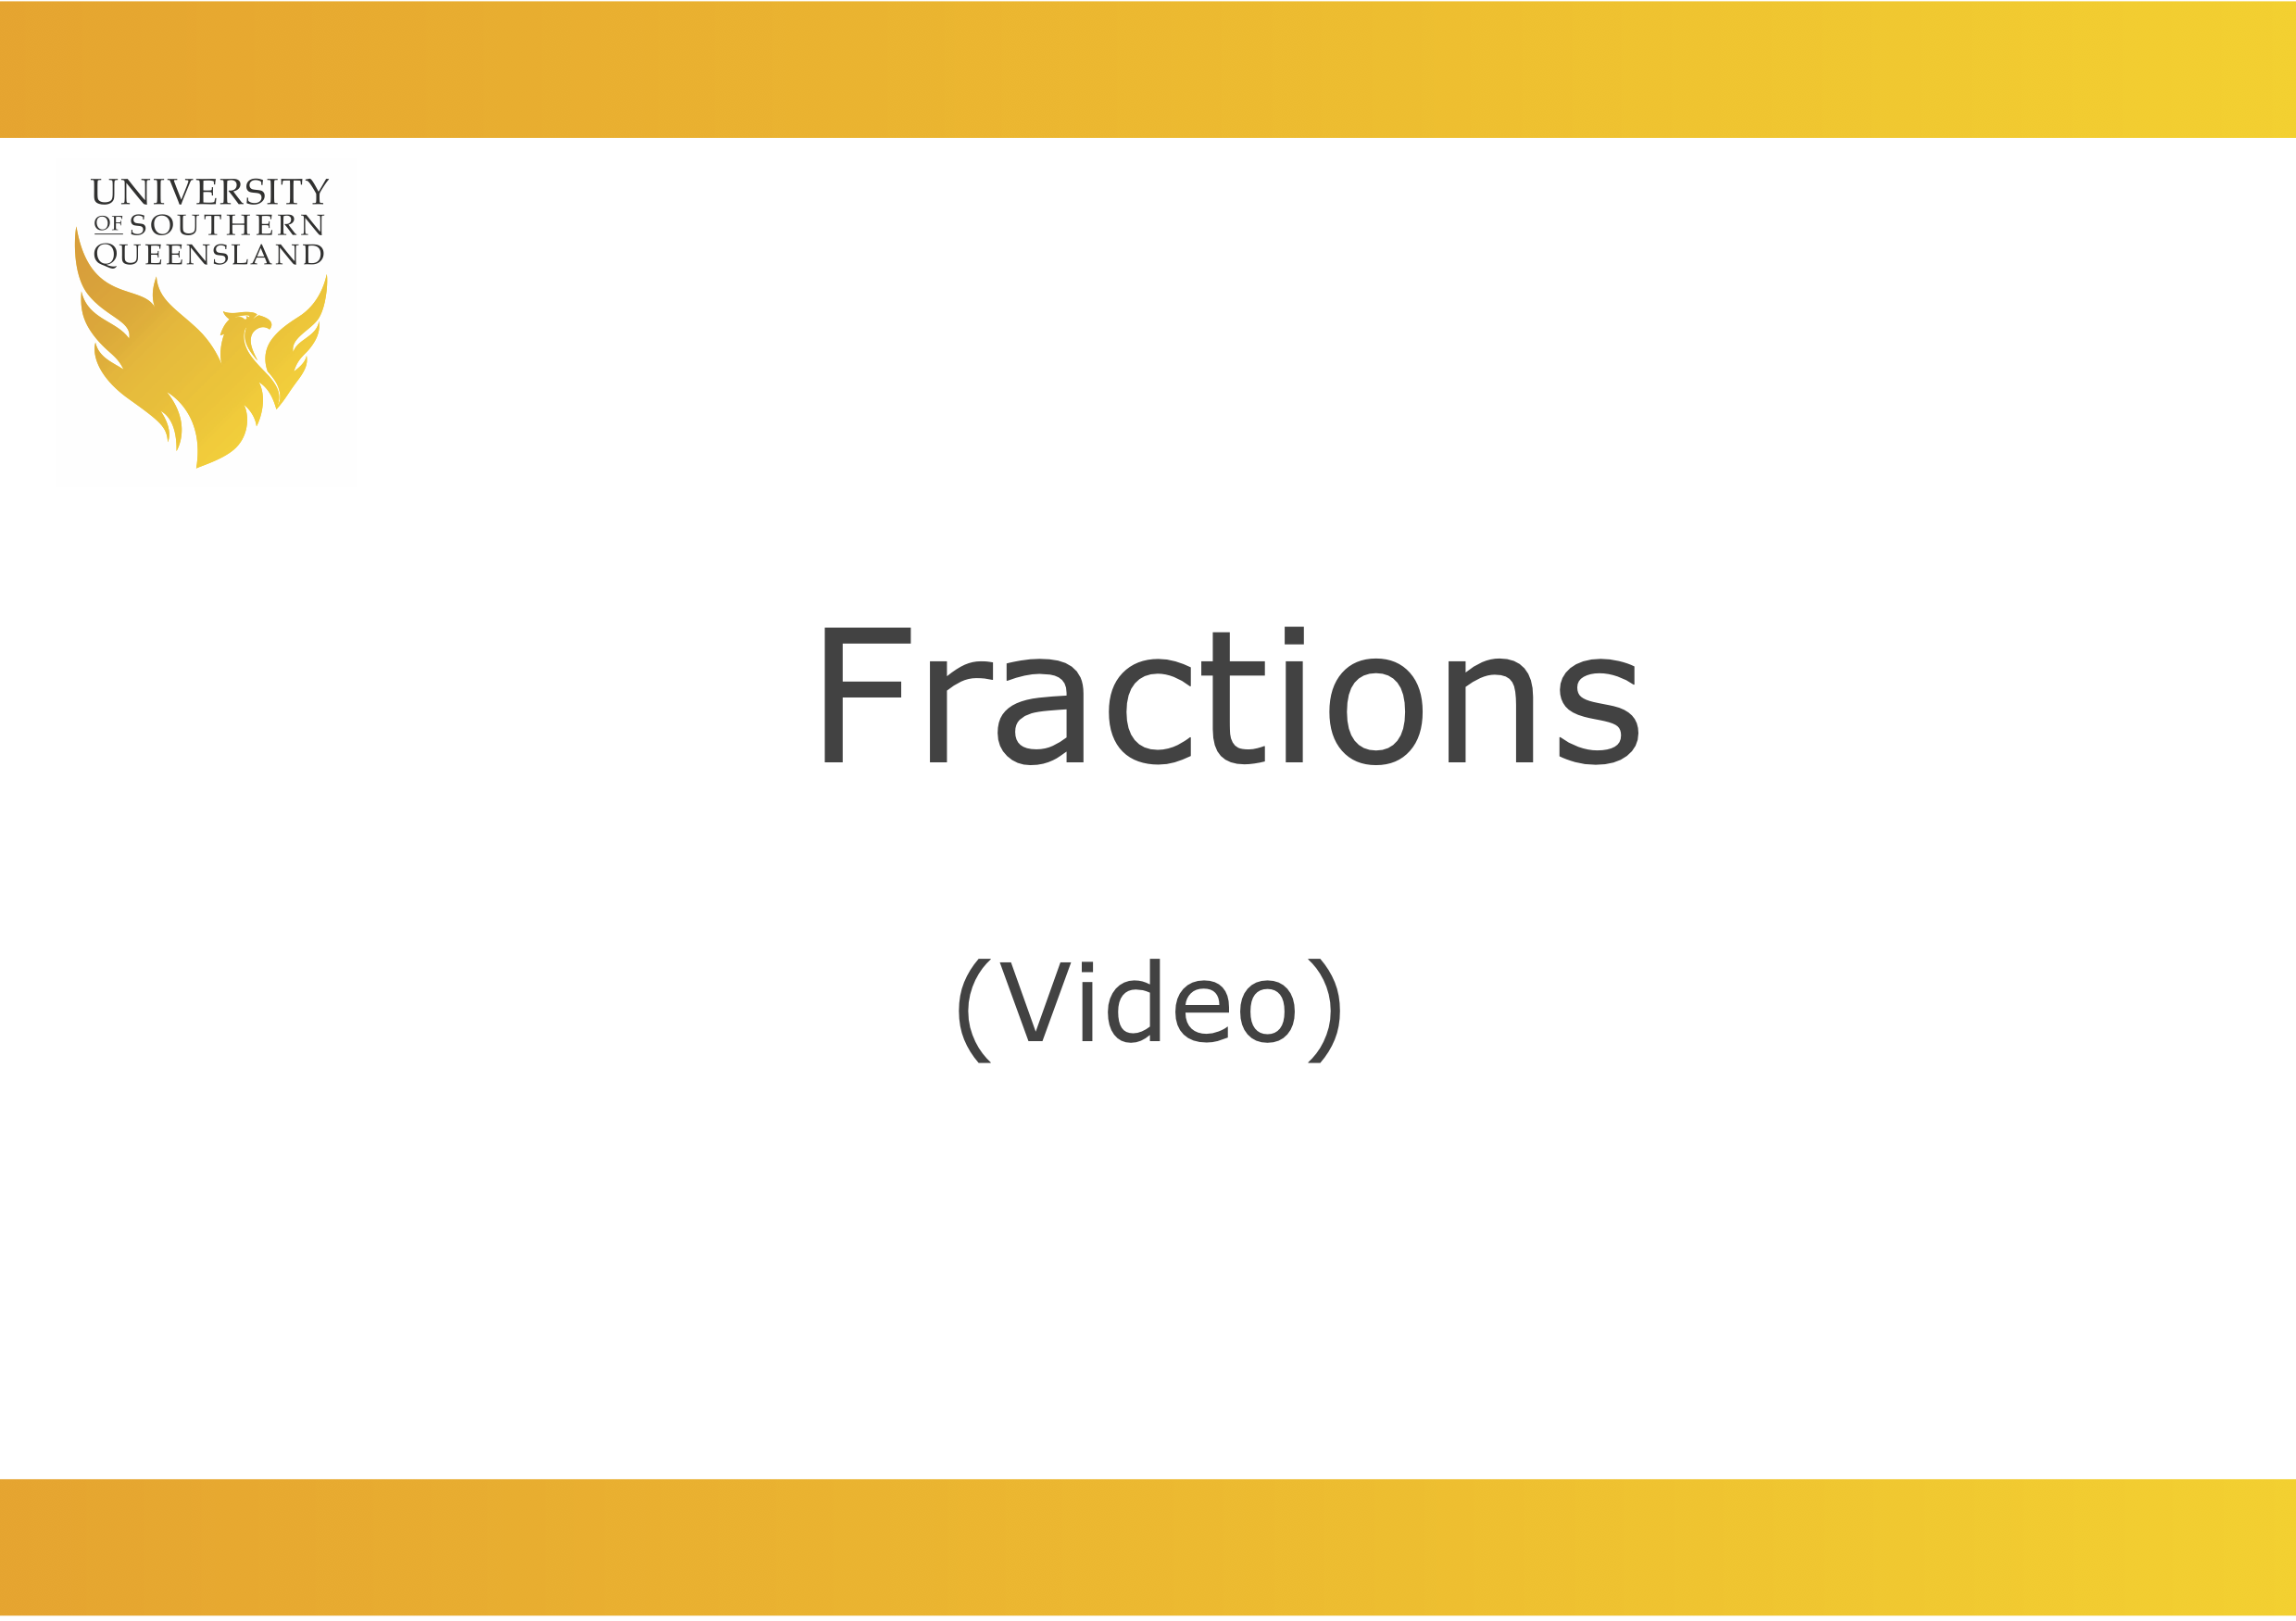 Fractions video